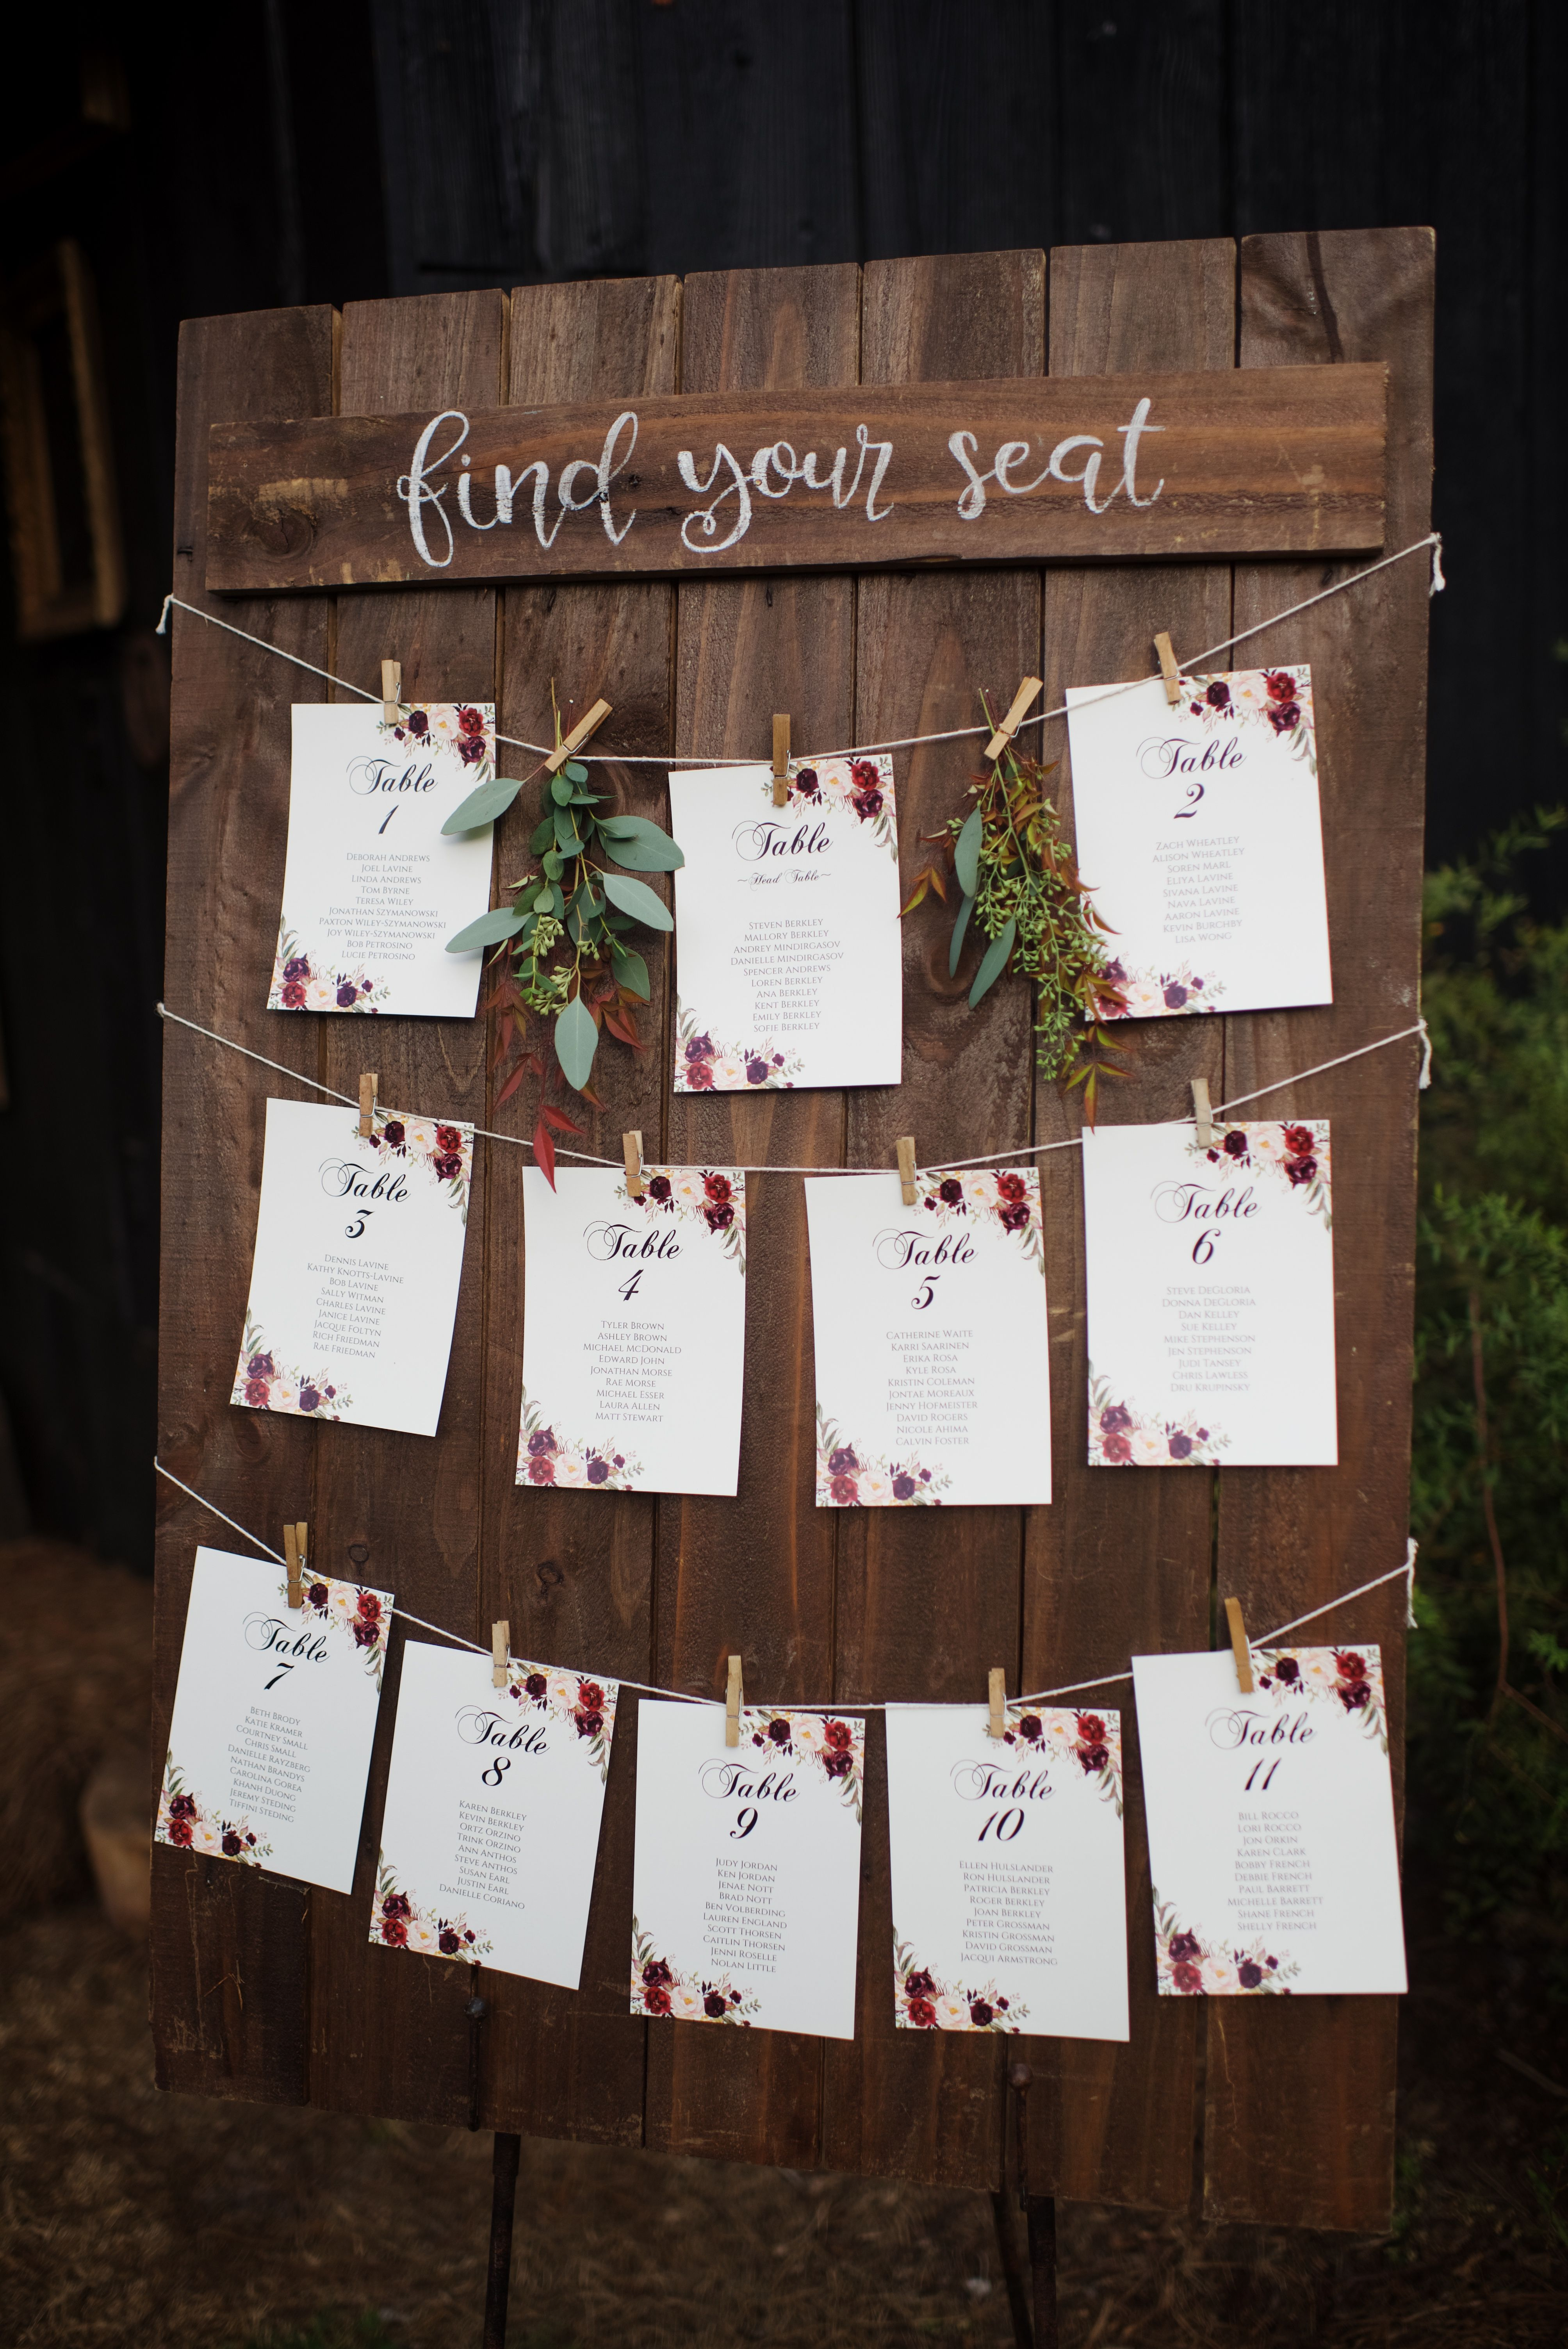 This seating chart is just simple and sweet! #cedarwoodweddings 10.21.17 :: Mallory + Steve | Cedarwood Weddings